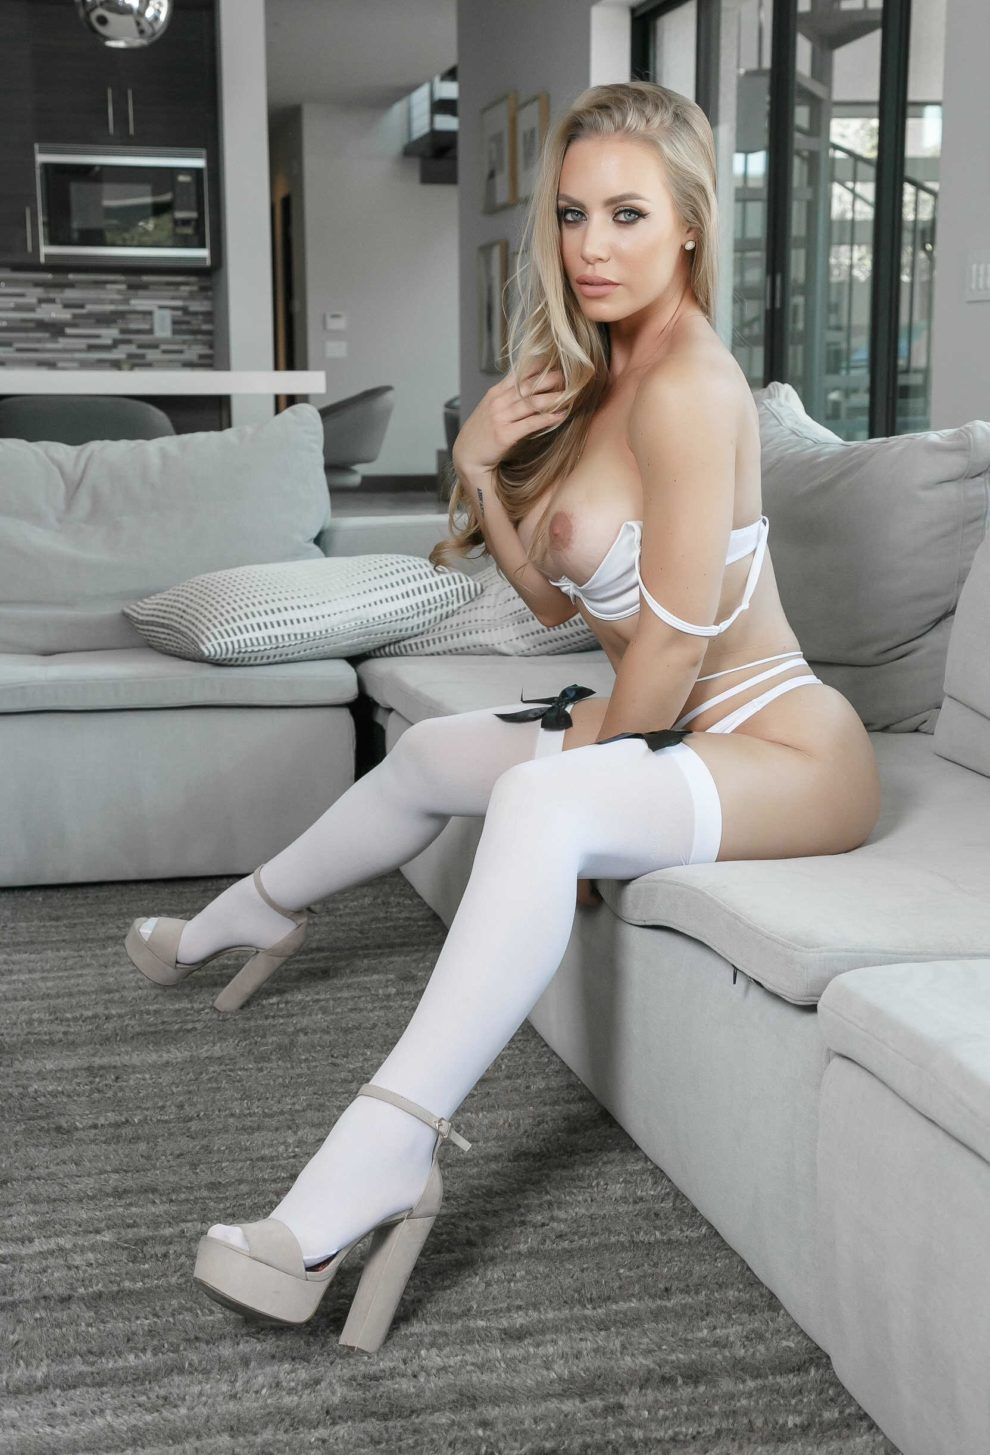 Drop Dead Gorgeous Nicole Aniston